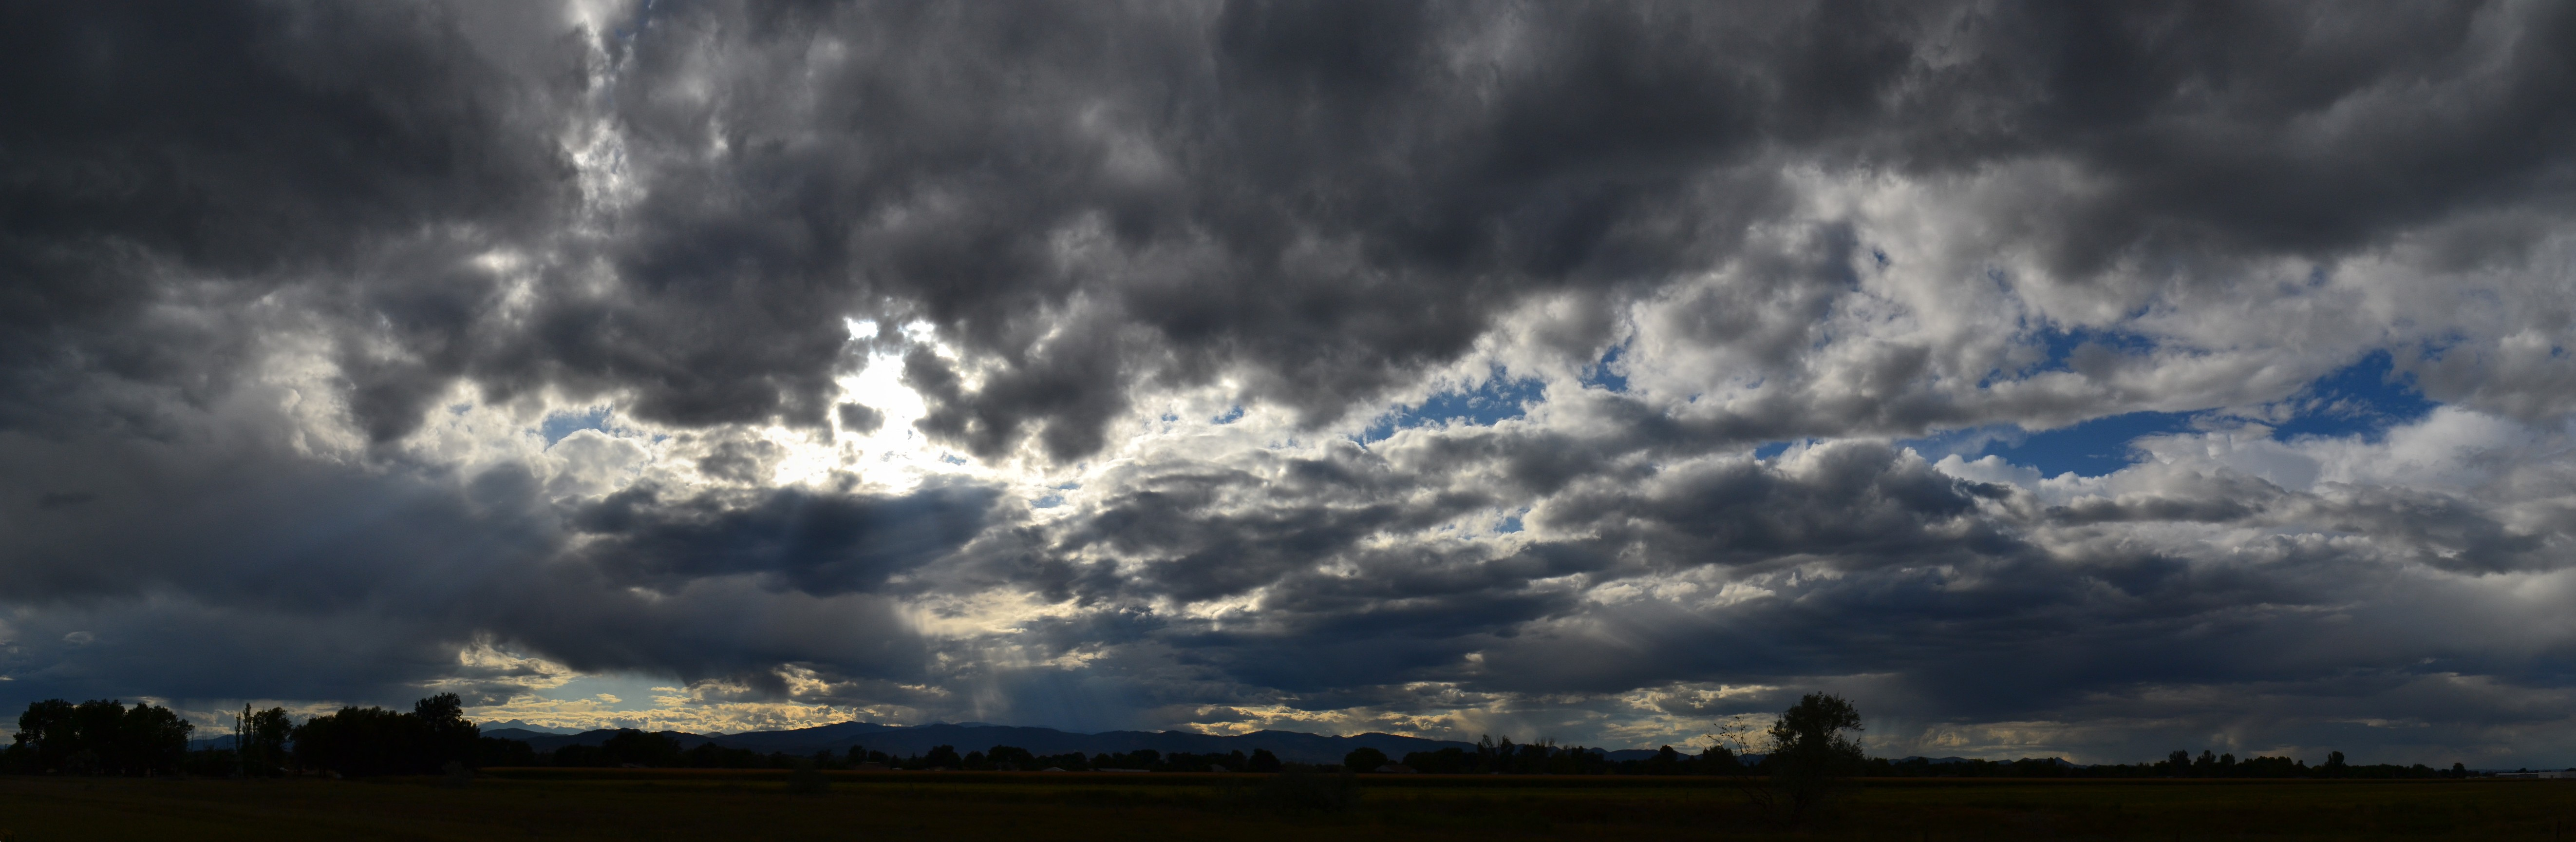 Stormy Clouds, Crepuscular Rays Panoramic, 2011-09-12 - Overcast ...